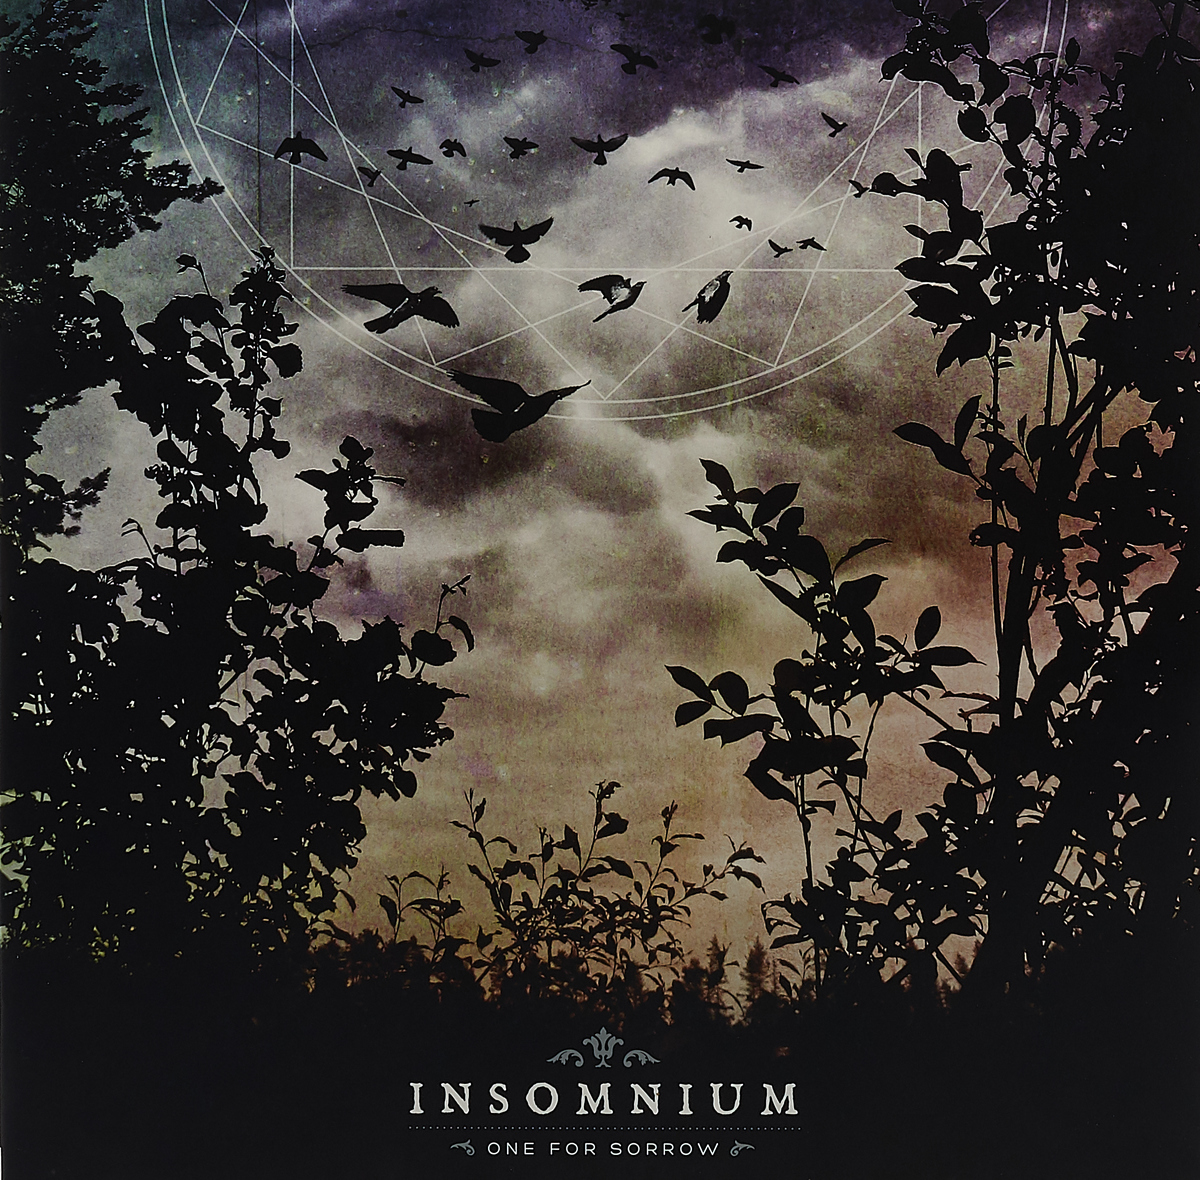 Insomnium Insomnium. One for Sorrow (Re-issue 2018) (LP + CD) фонарь led lenser f1 цвет черный